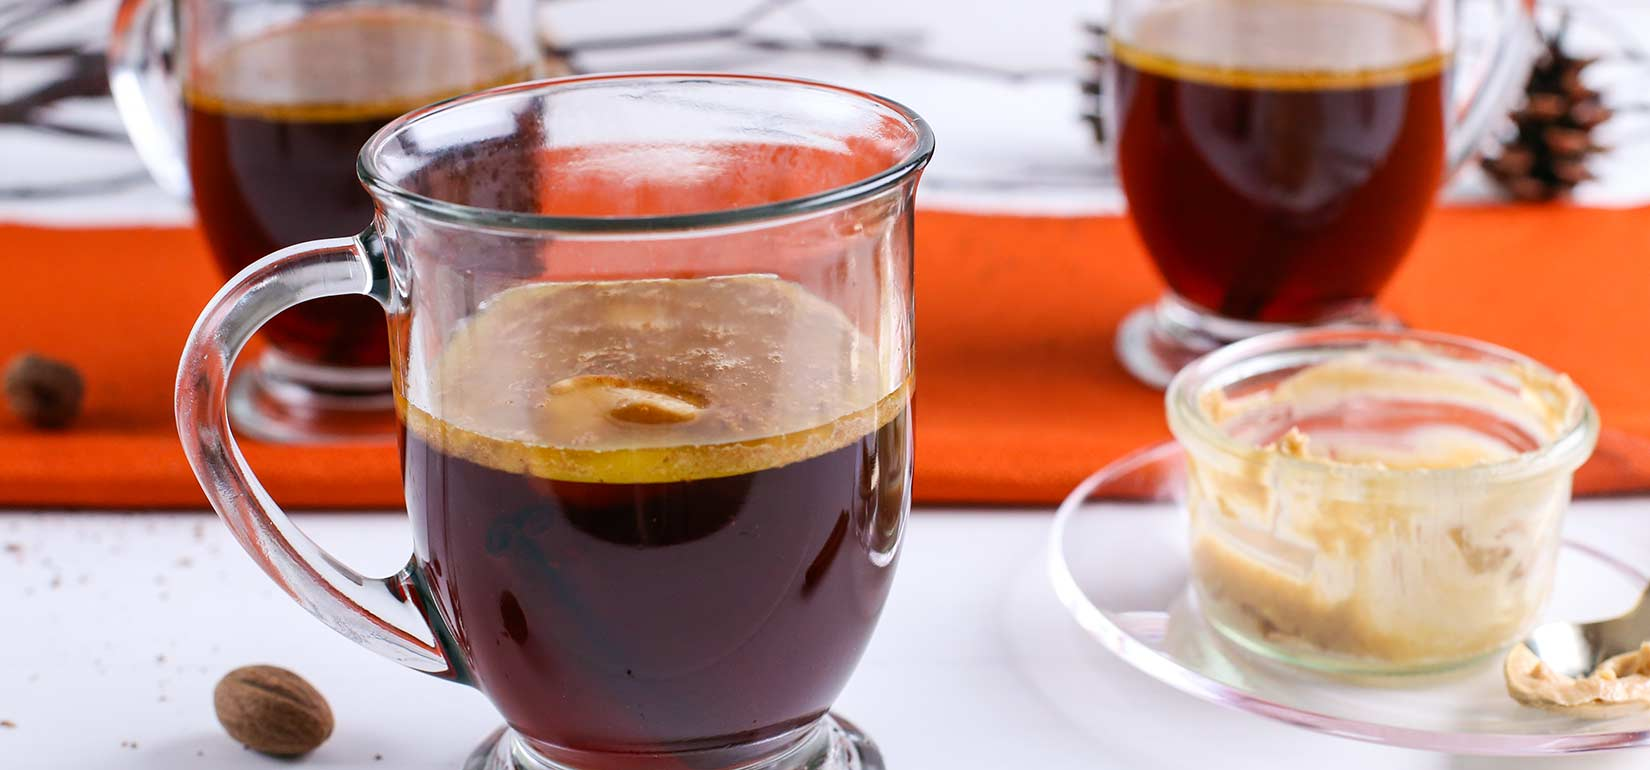 Simply Organic Holiday Organic Salted Caramel Hot Buttered Rum Recipe